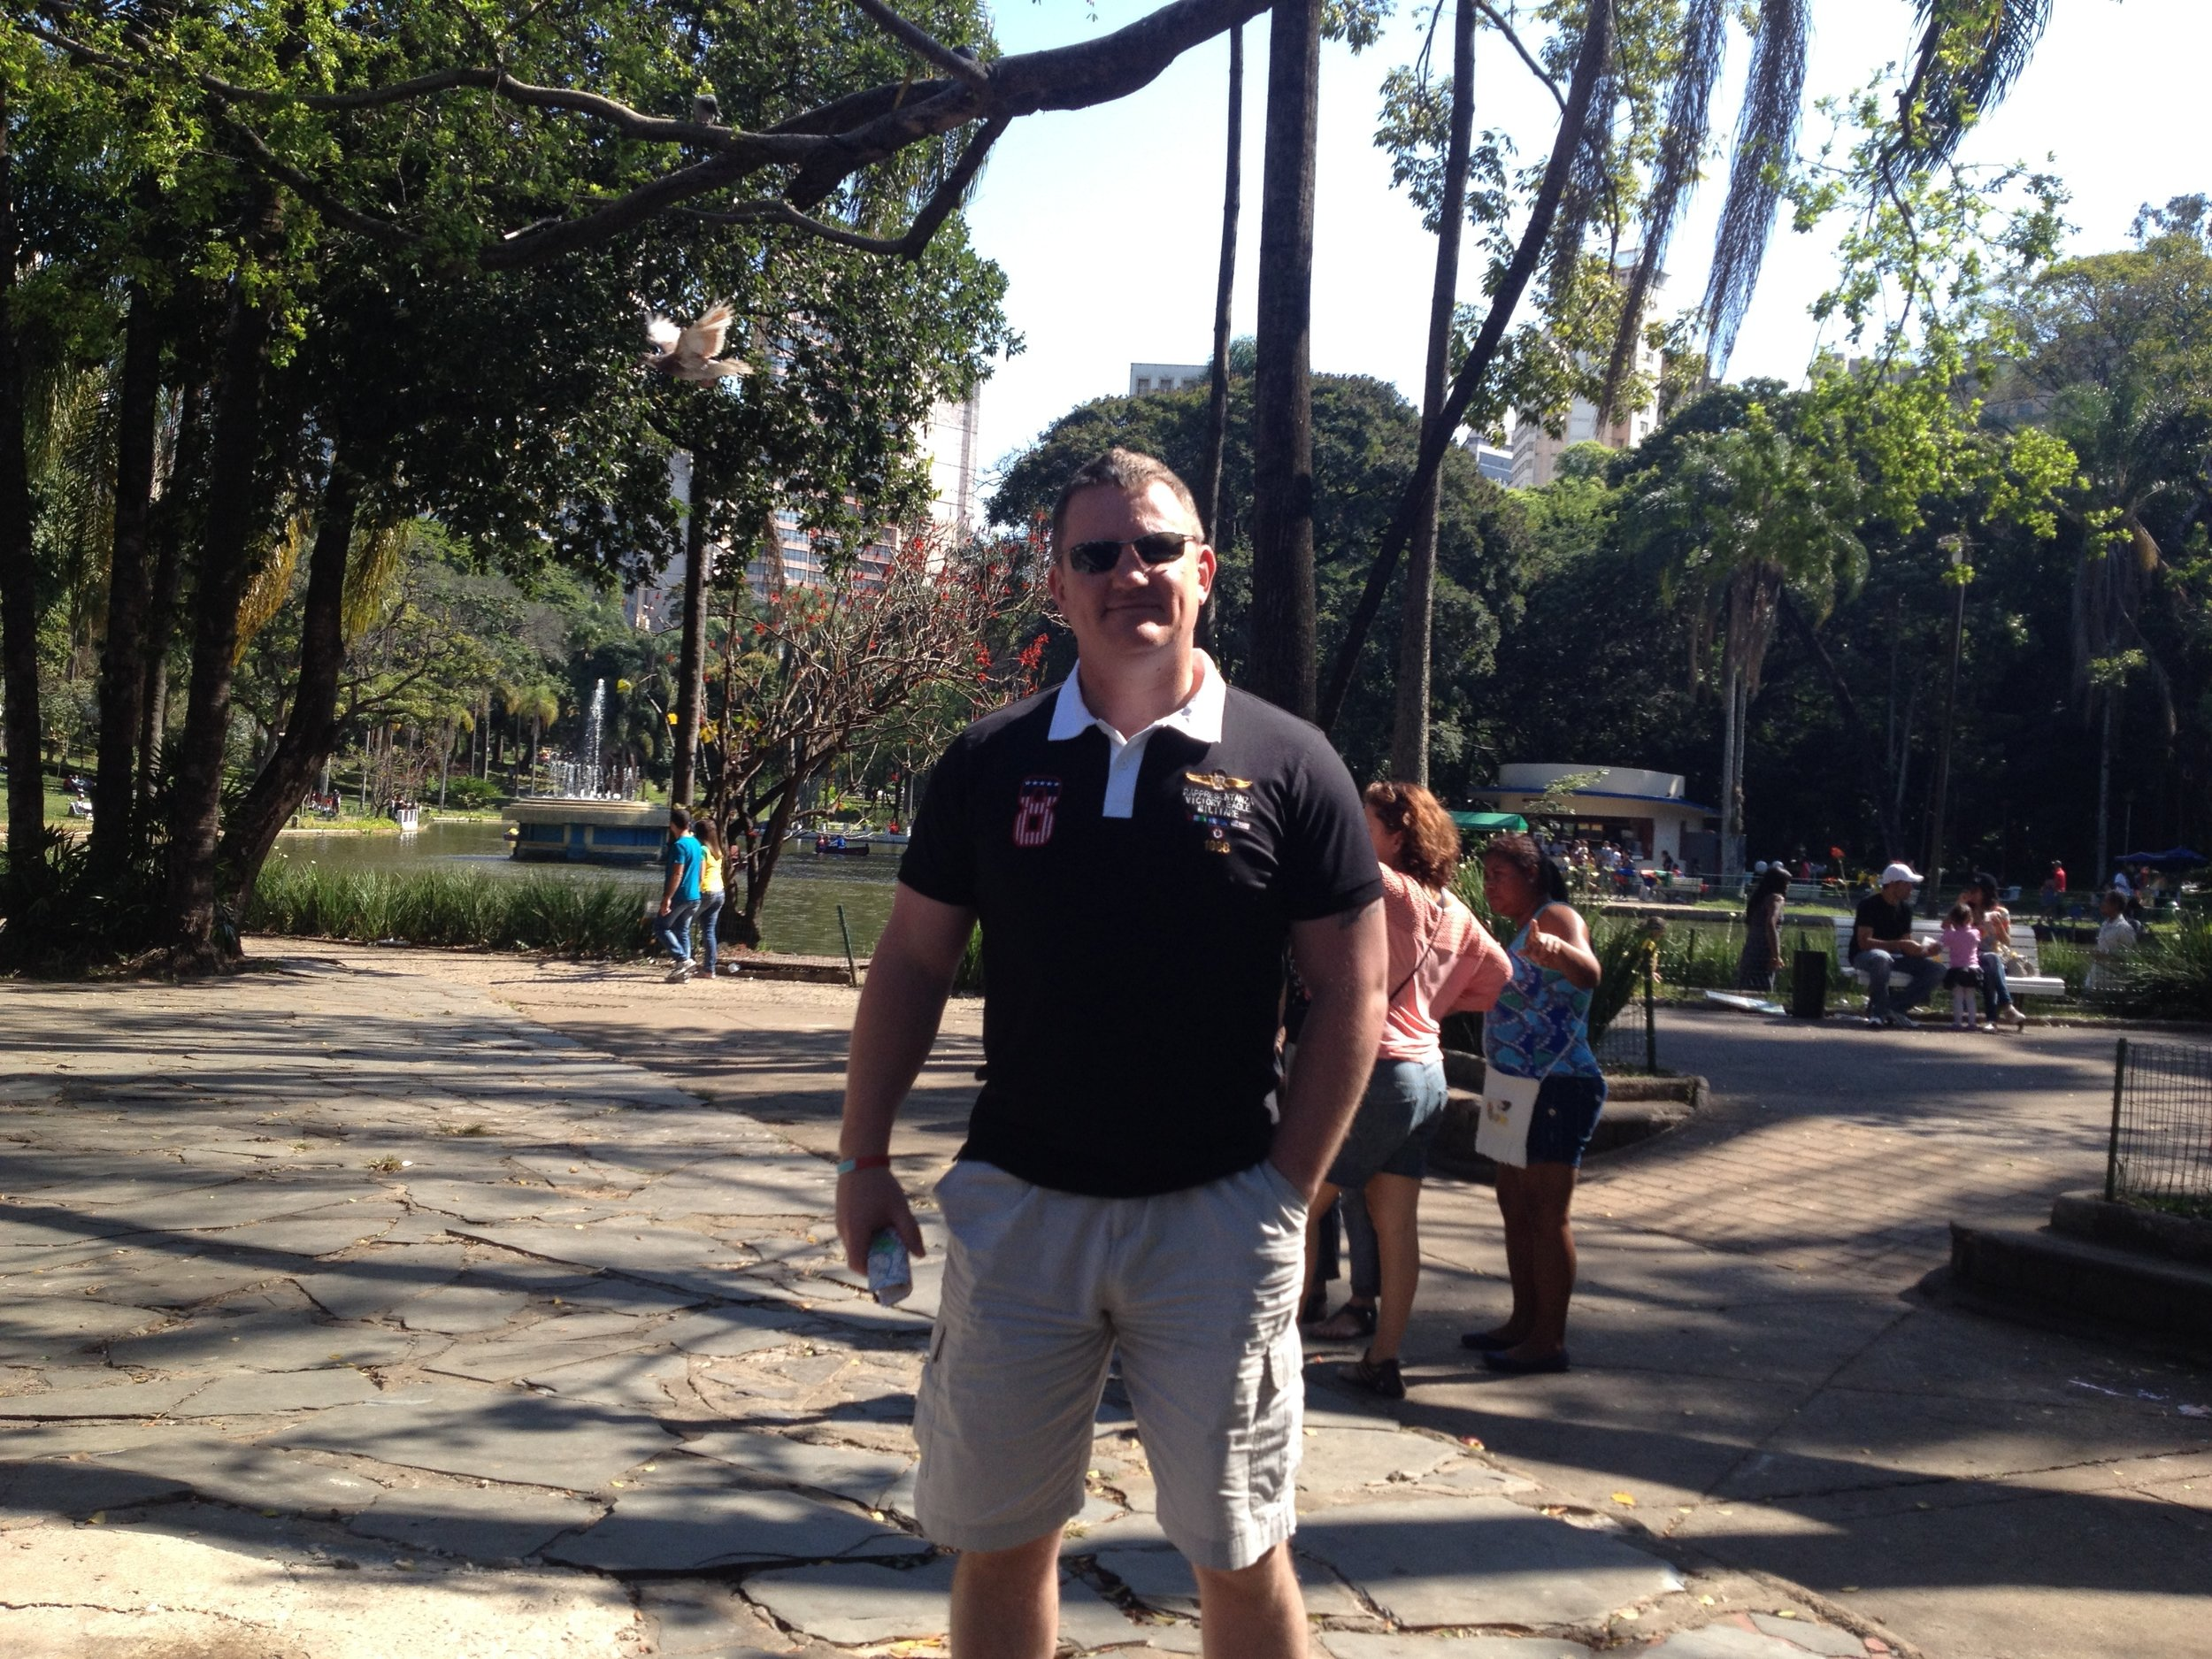 On Parrott watch in one of the parks in Belo Horizonte..